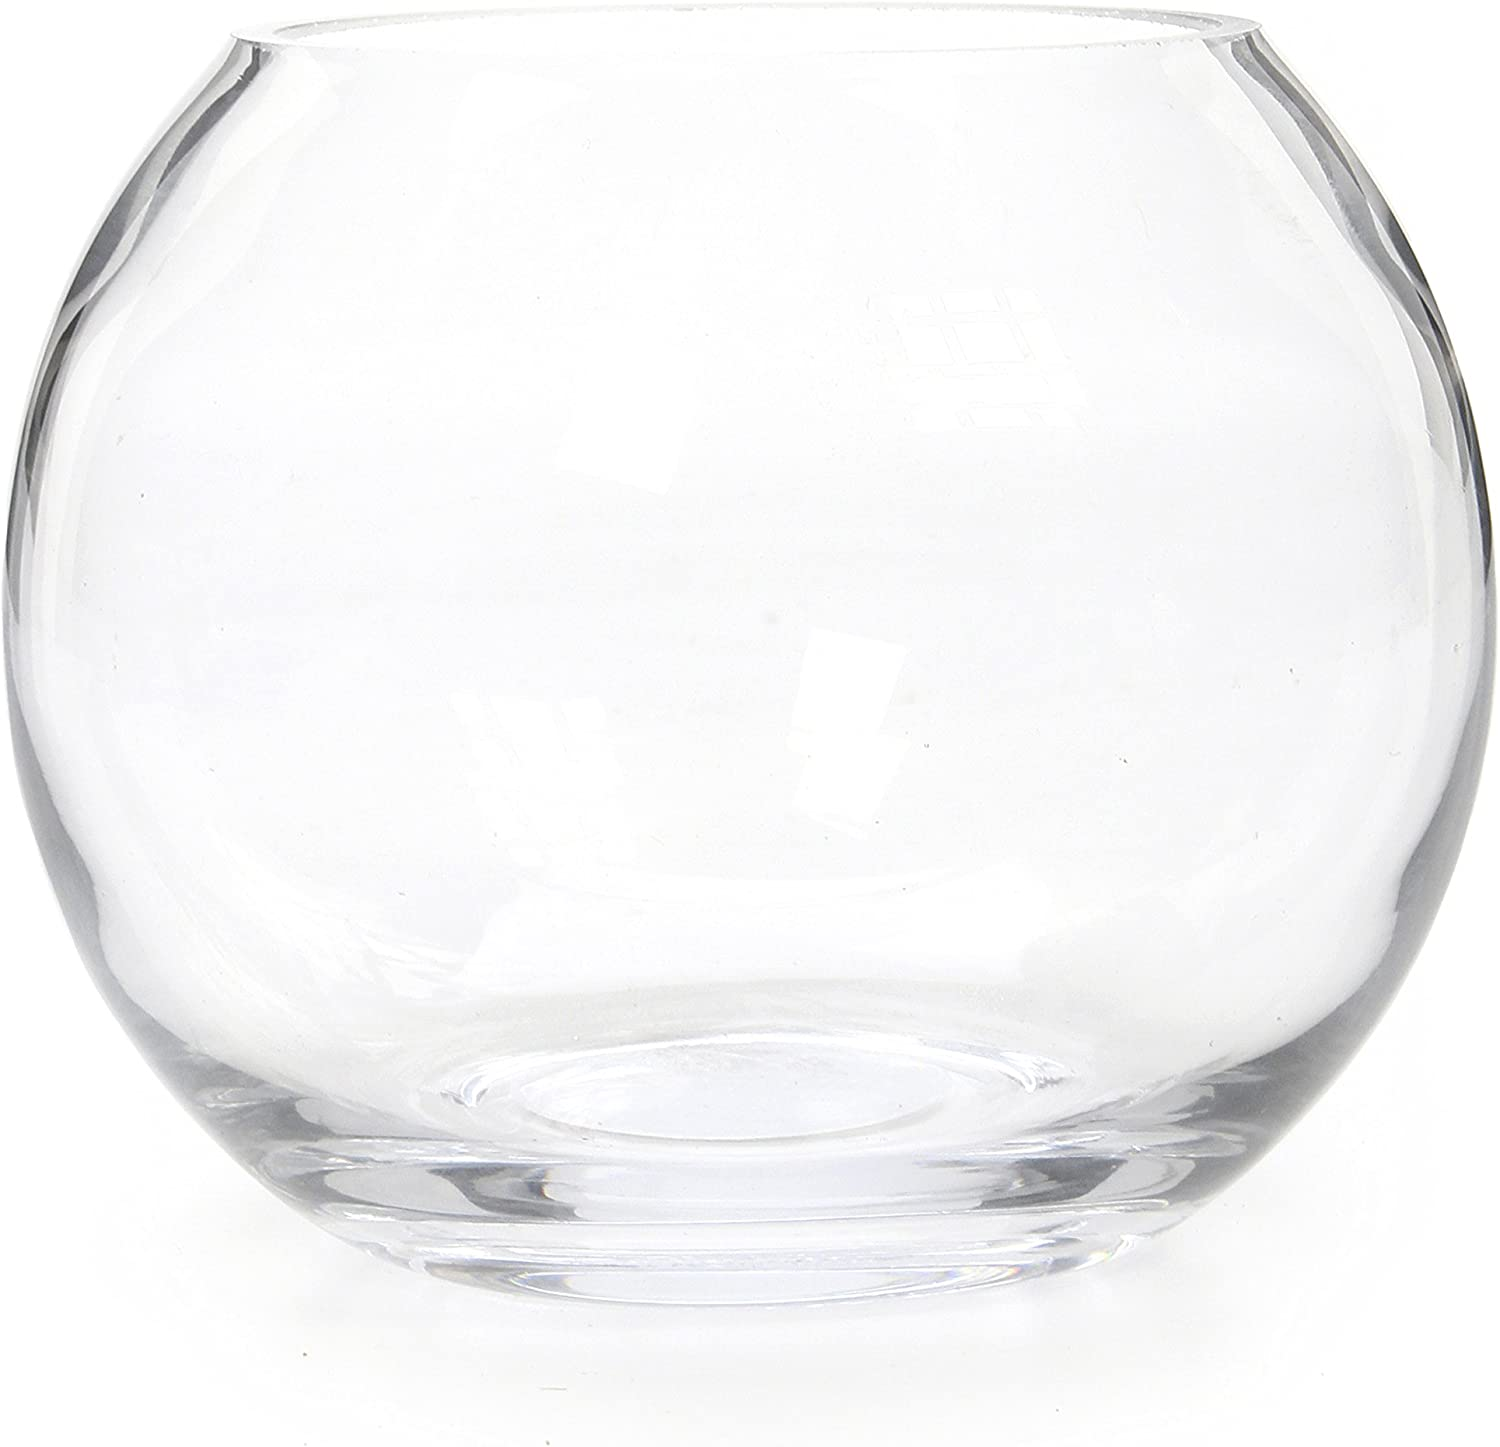 "Hosley's 6"" Diameter Glass Bowl. Ideal Gift for Wedding, Special Occasion, Floral Centerpiece Arrangements, Tealight Gardens, Spa & Aromatherapy Settings, DIY Craft Projects O3"